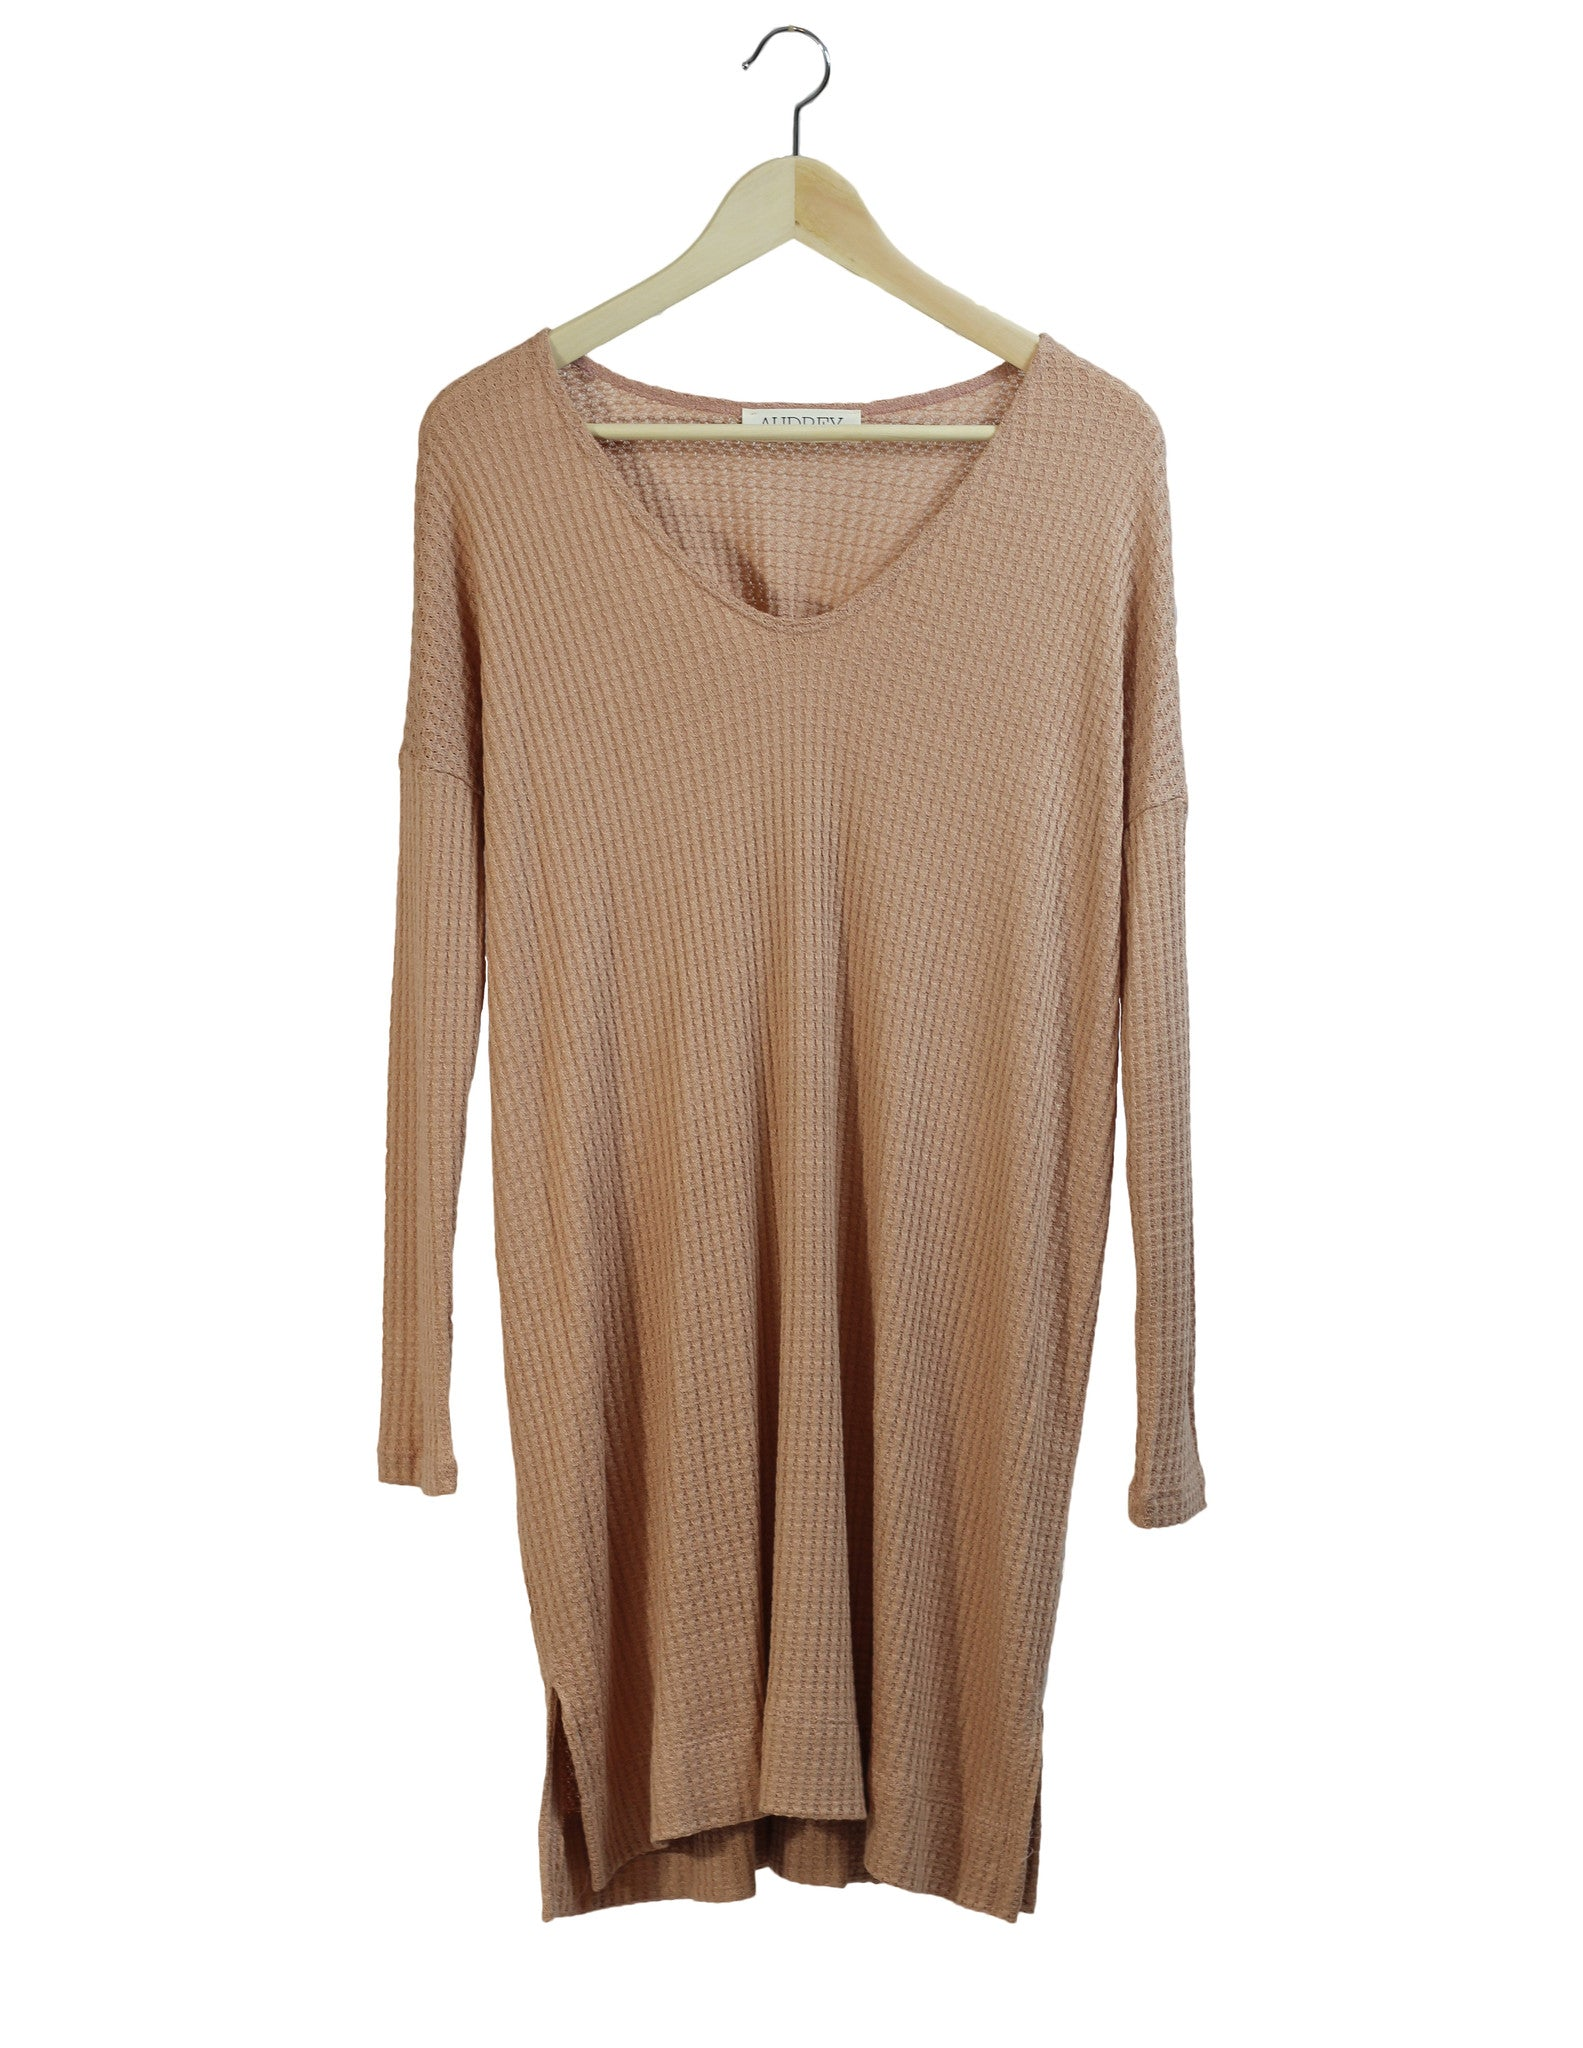 Peach Tunic / Ethical Fashion